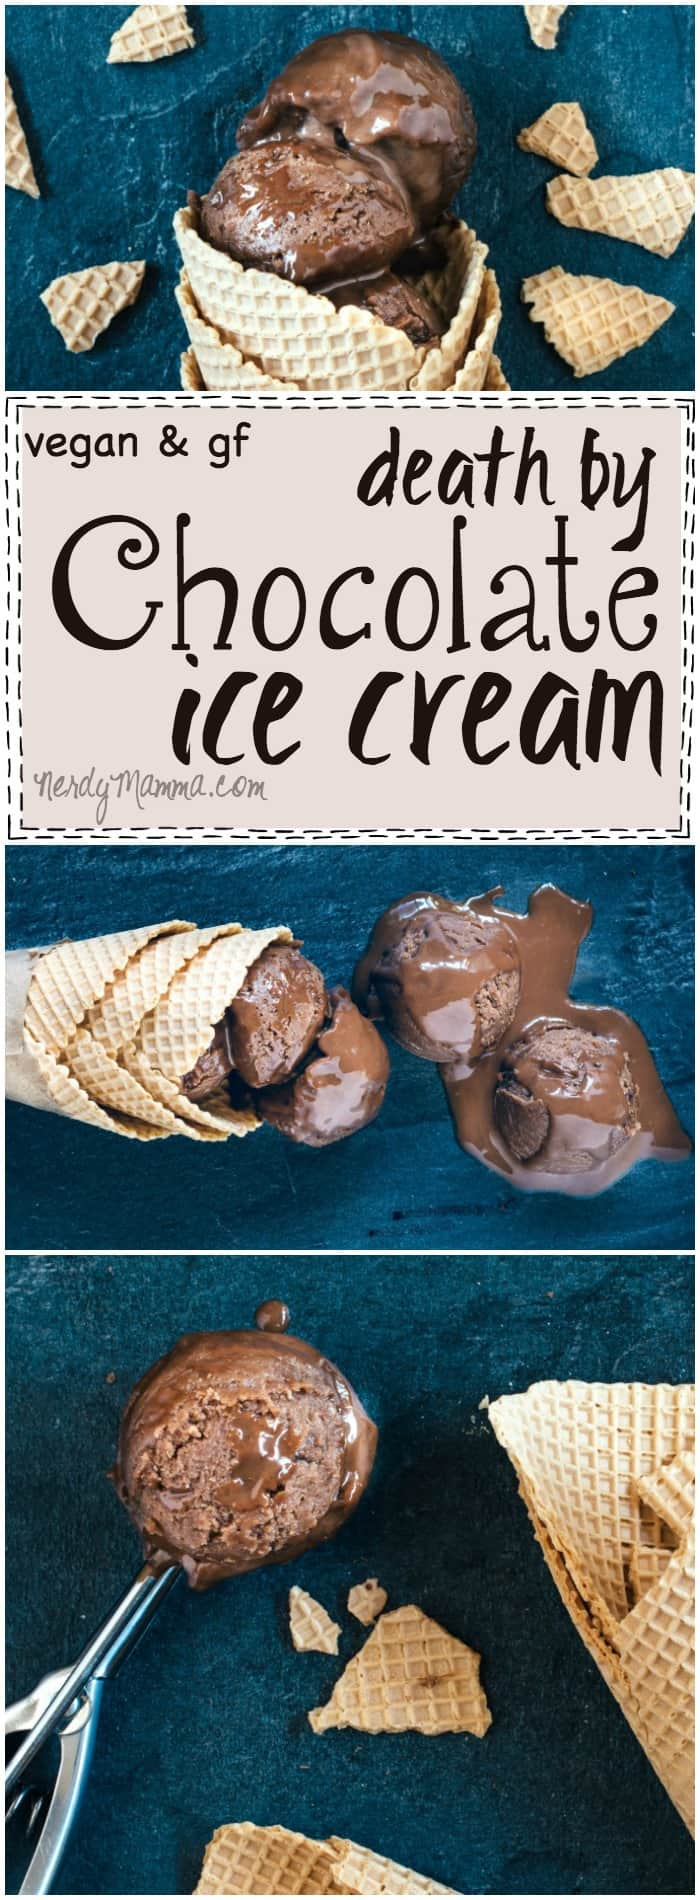 Mmmm...I cannot wait to try this recipe for Vegan and Gluten-Free Death by Chocolate Ice Cream. It sounds heavenly (no-dairy, no churn!). Seriously. In LOVE.